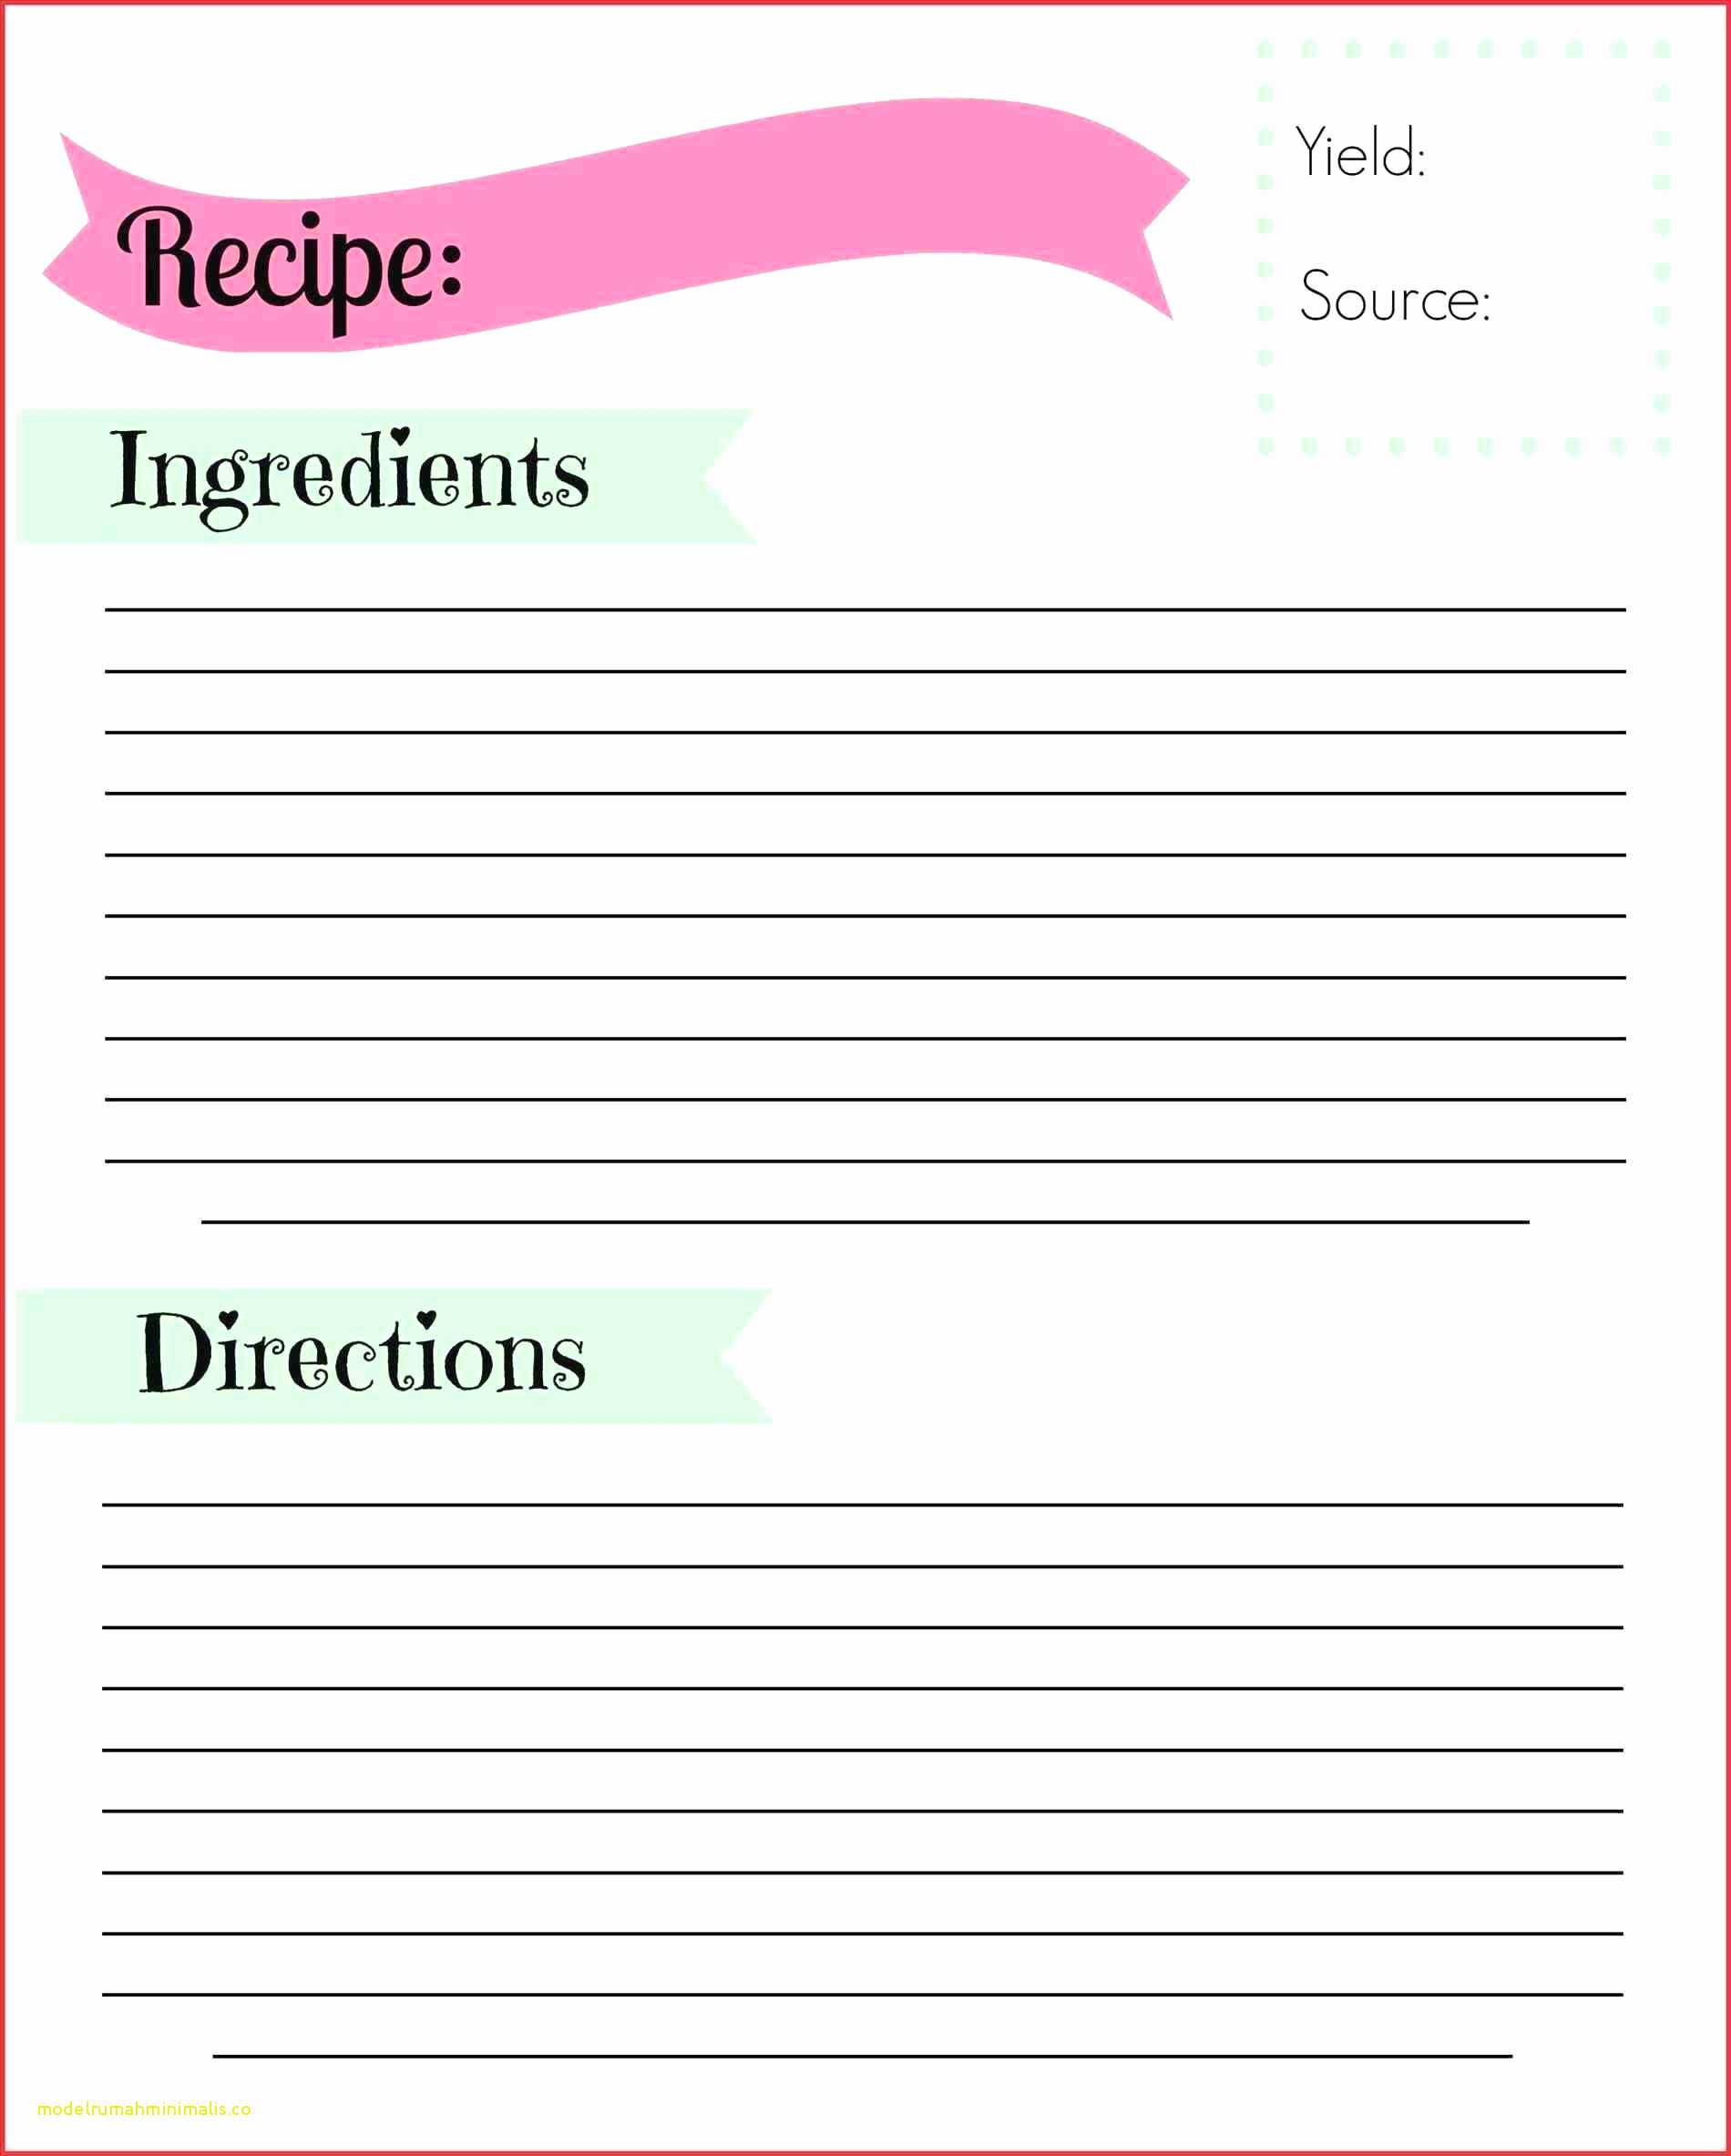 039 How To Create Book Template In Word New Ms Recipe Bire Pertaining To How To Create A Book Template In Word